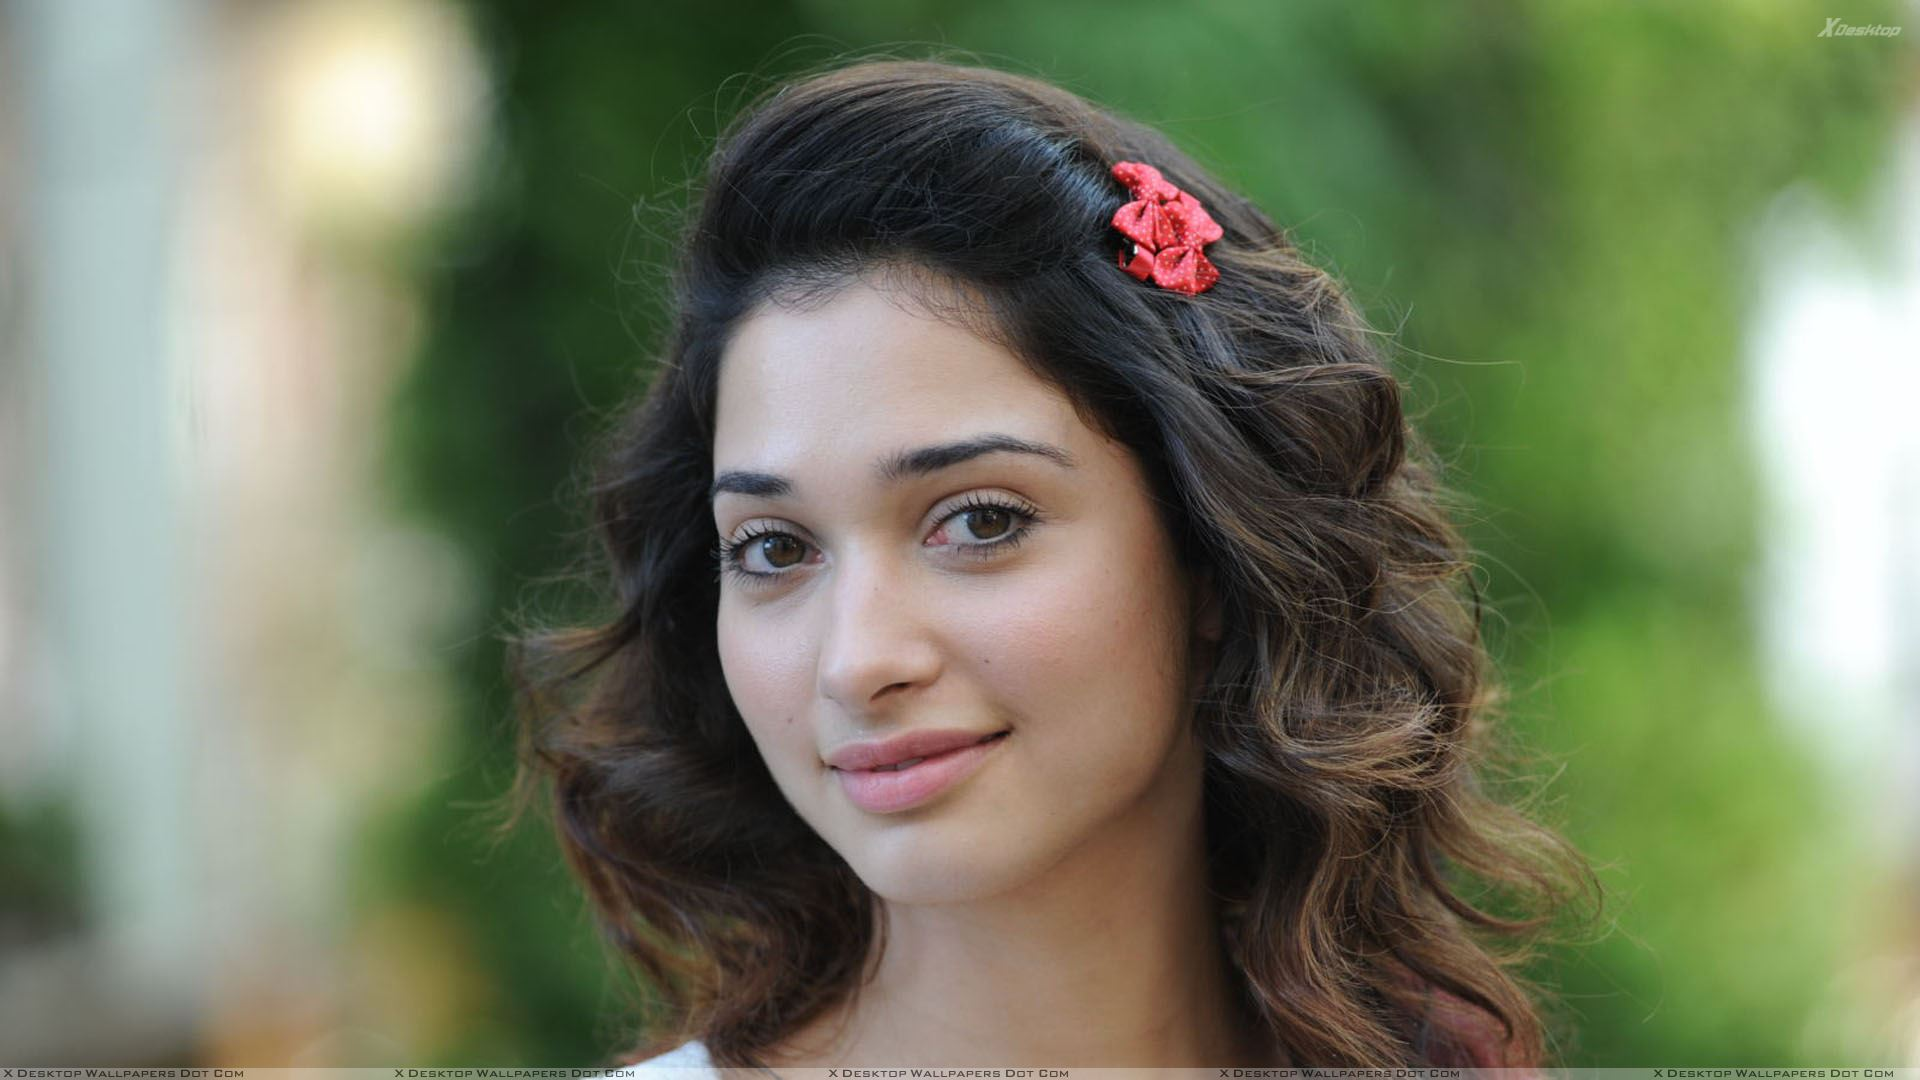 tamanna bhatia wallpapers, photos & images in hd